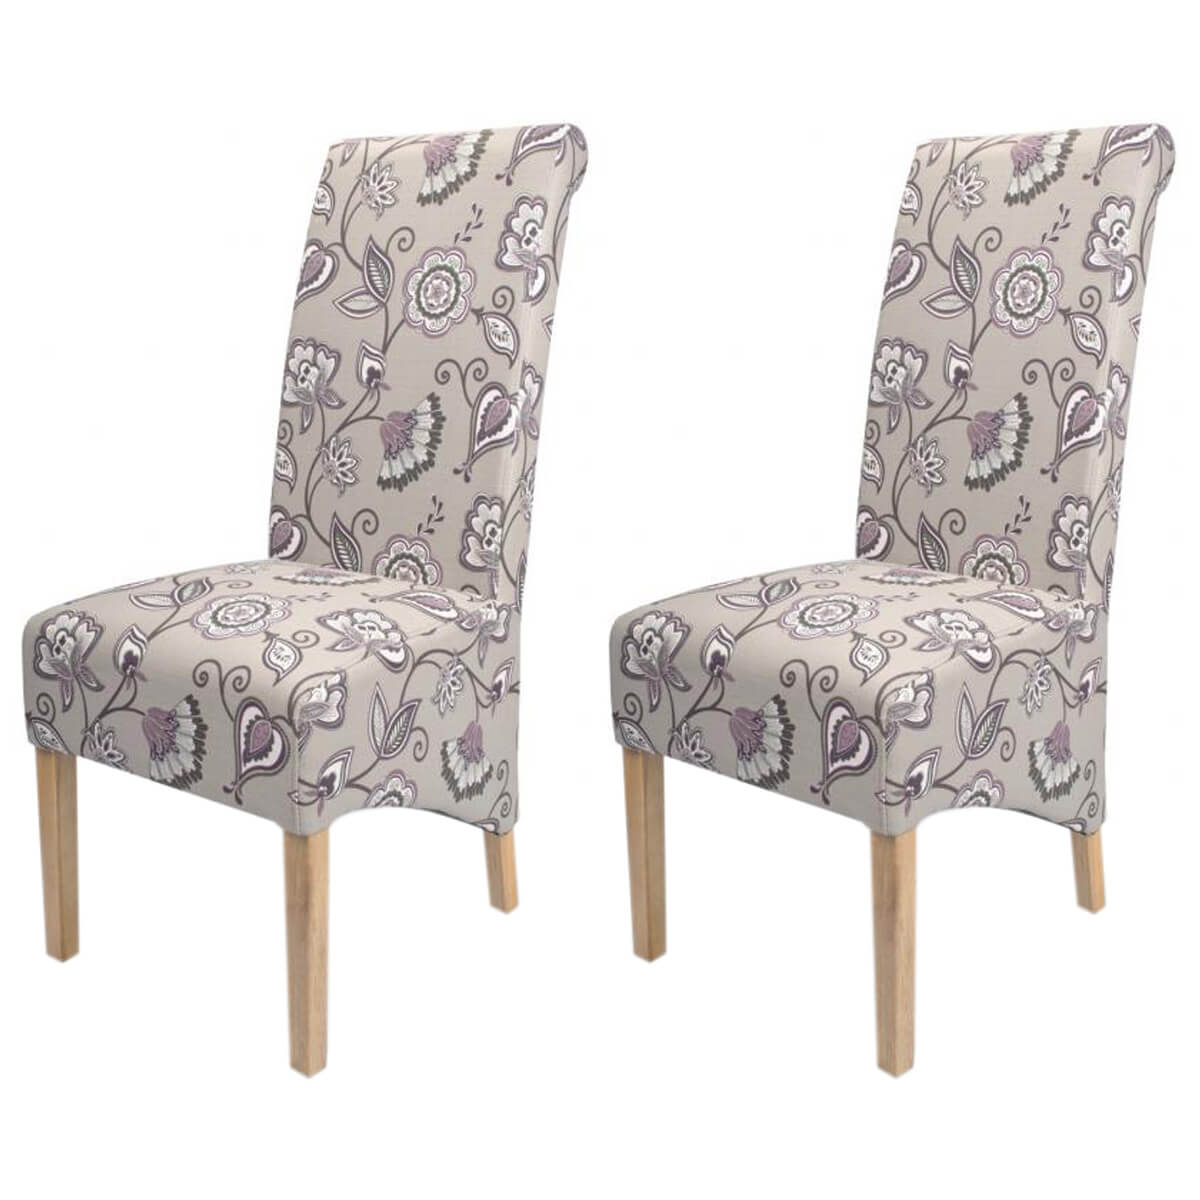 fabric dining chairs uk faux leather chair cushions krista deco amethyst floral